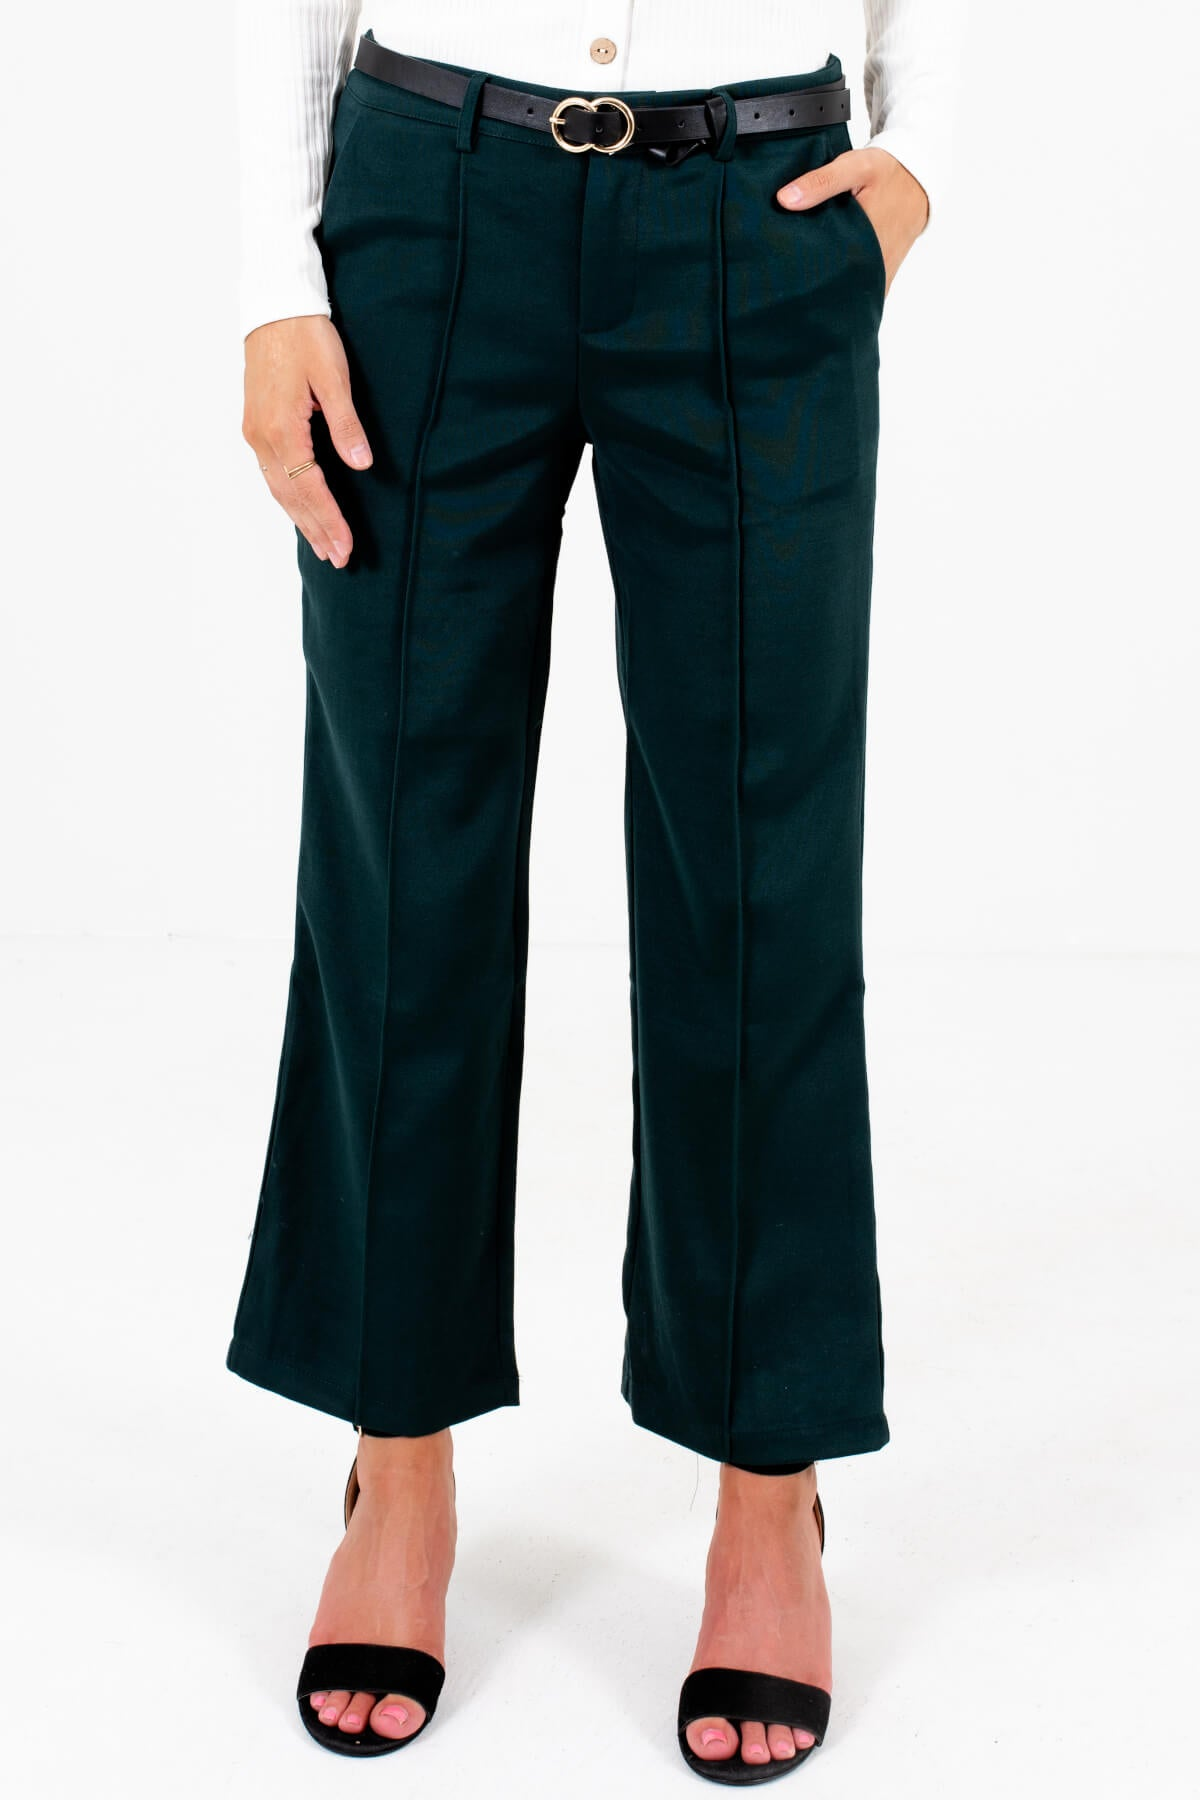 Dark Teal Green Seam Detail Boutique Slacks for Women